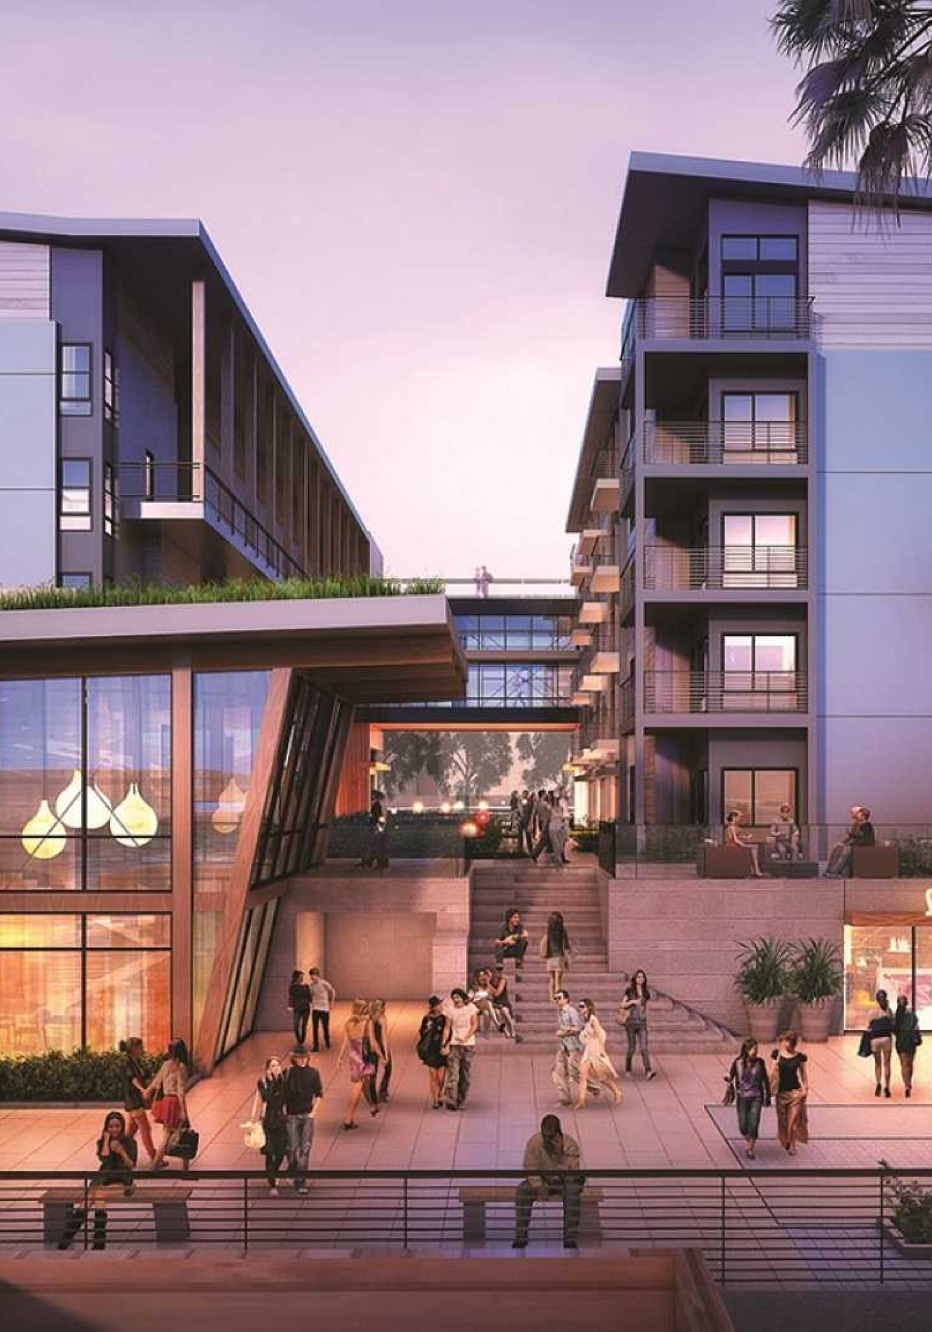 Modern apartments and retail